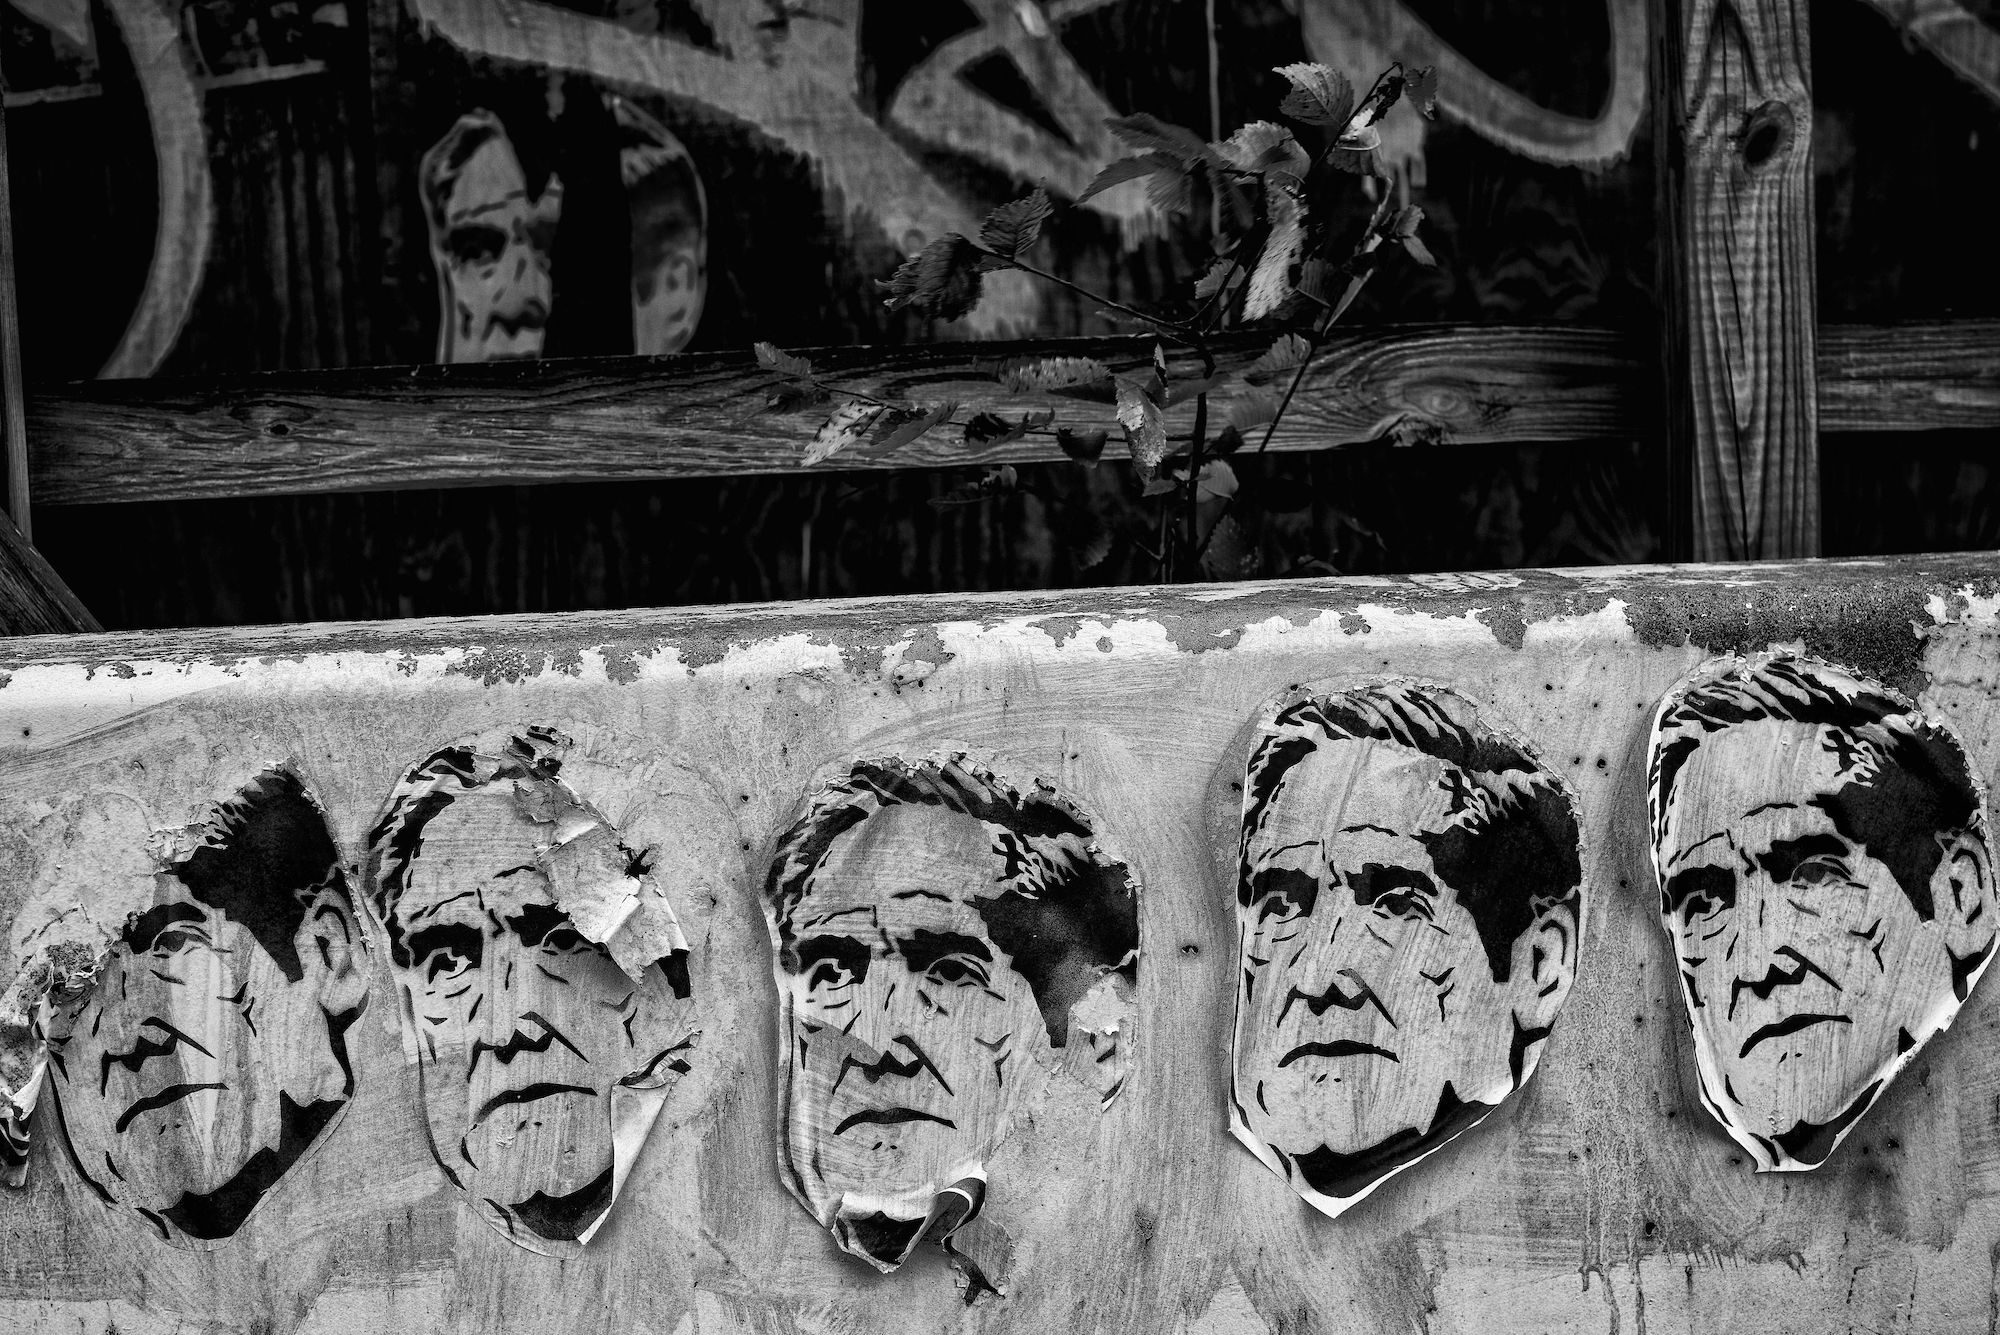 Day 915: Wheatpaste posters of Special counsel Robert Mueller at a construction site in Washington, DC on July 23rd, 2019, the day prior to Mueller's testimony before the House Judiciary and Intelligence Committees.